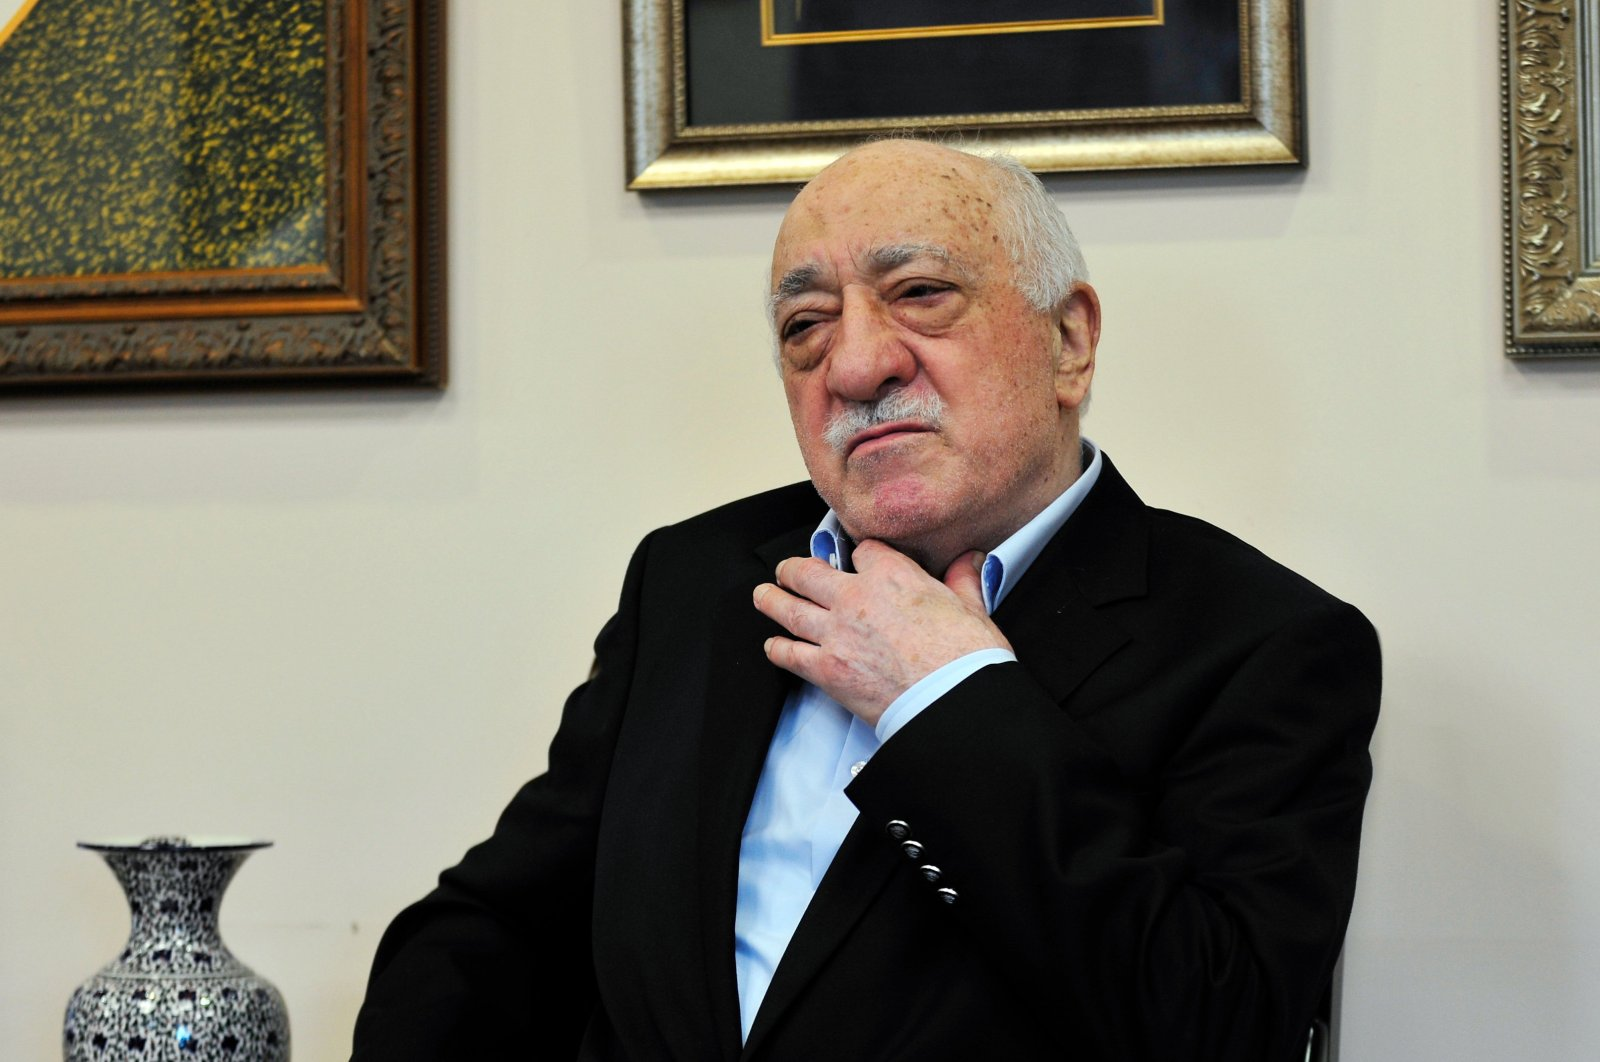 FETÖ's U.S-based leader Fetullah Gülen speaks to members of the media at his compound, July 17, 2016, in Saylorsburg, Pa. FETÖ is accused of staging the July 15 coup attempt that tried to overthrow Turkey's democratically elected government and killed 251 people and injured nearly 2,200 others. (AP Photo)